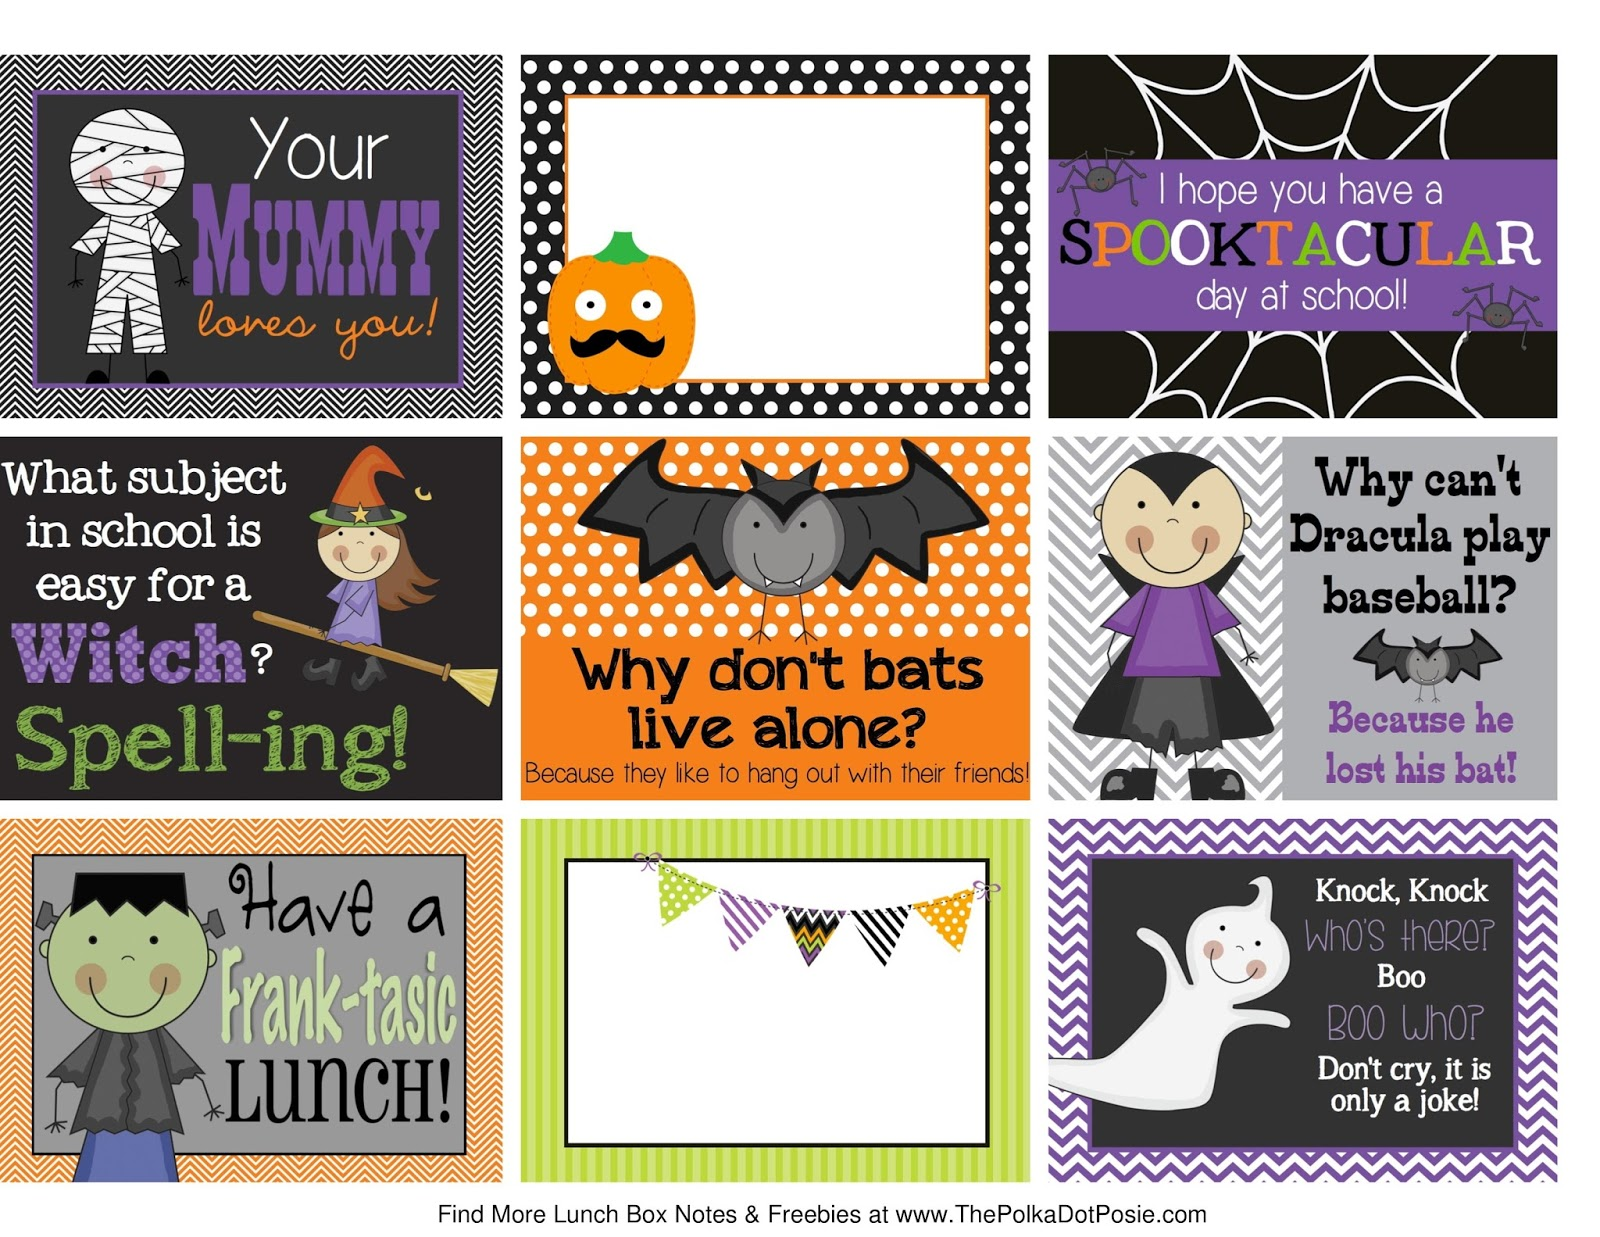 Diy Halloween Collage additionally E E E B E E B D C Qtip Art Skeleton Activities in addition Ad F B F D E B B moreover D D Fcbfde Ebf Dc C E Pop Display Display Design in addition Fa B F Bb C Fa A B. on fall halloween pos